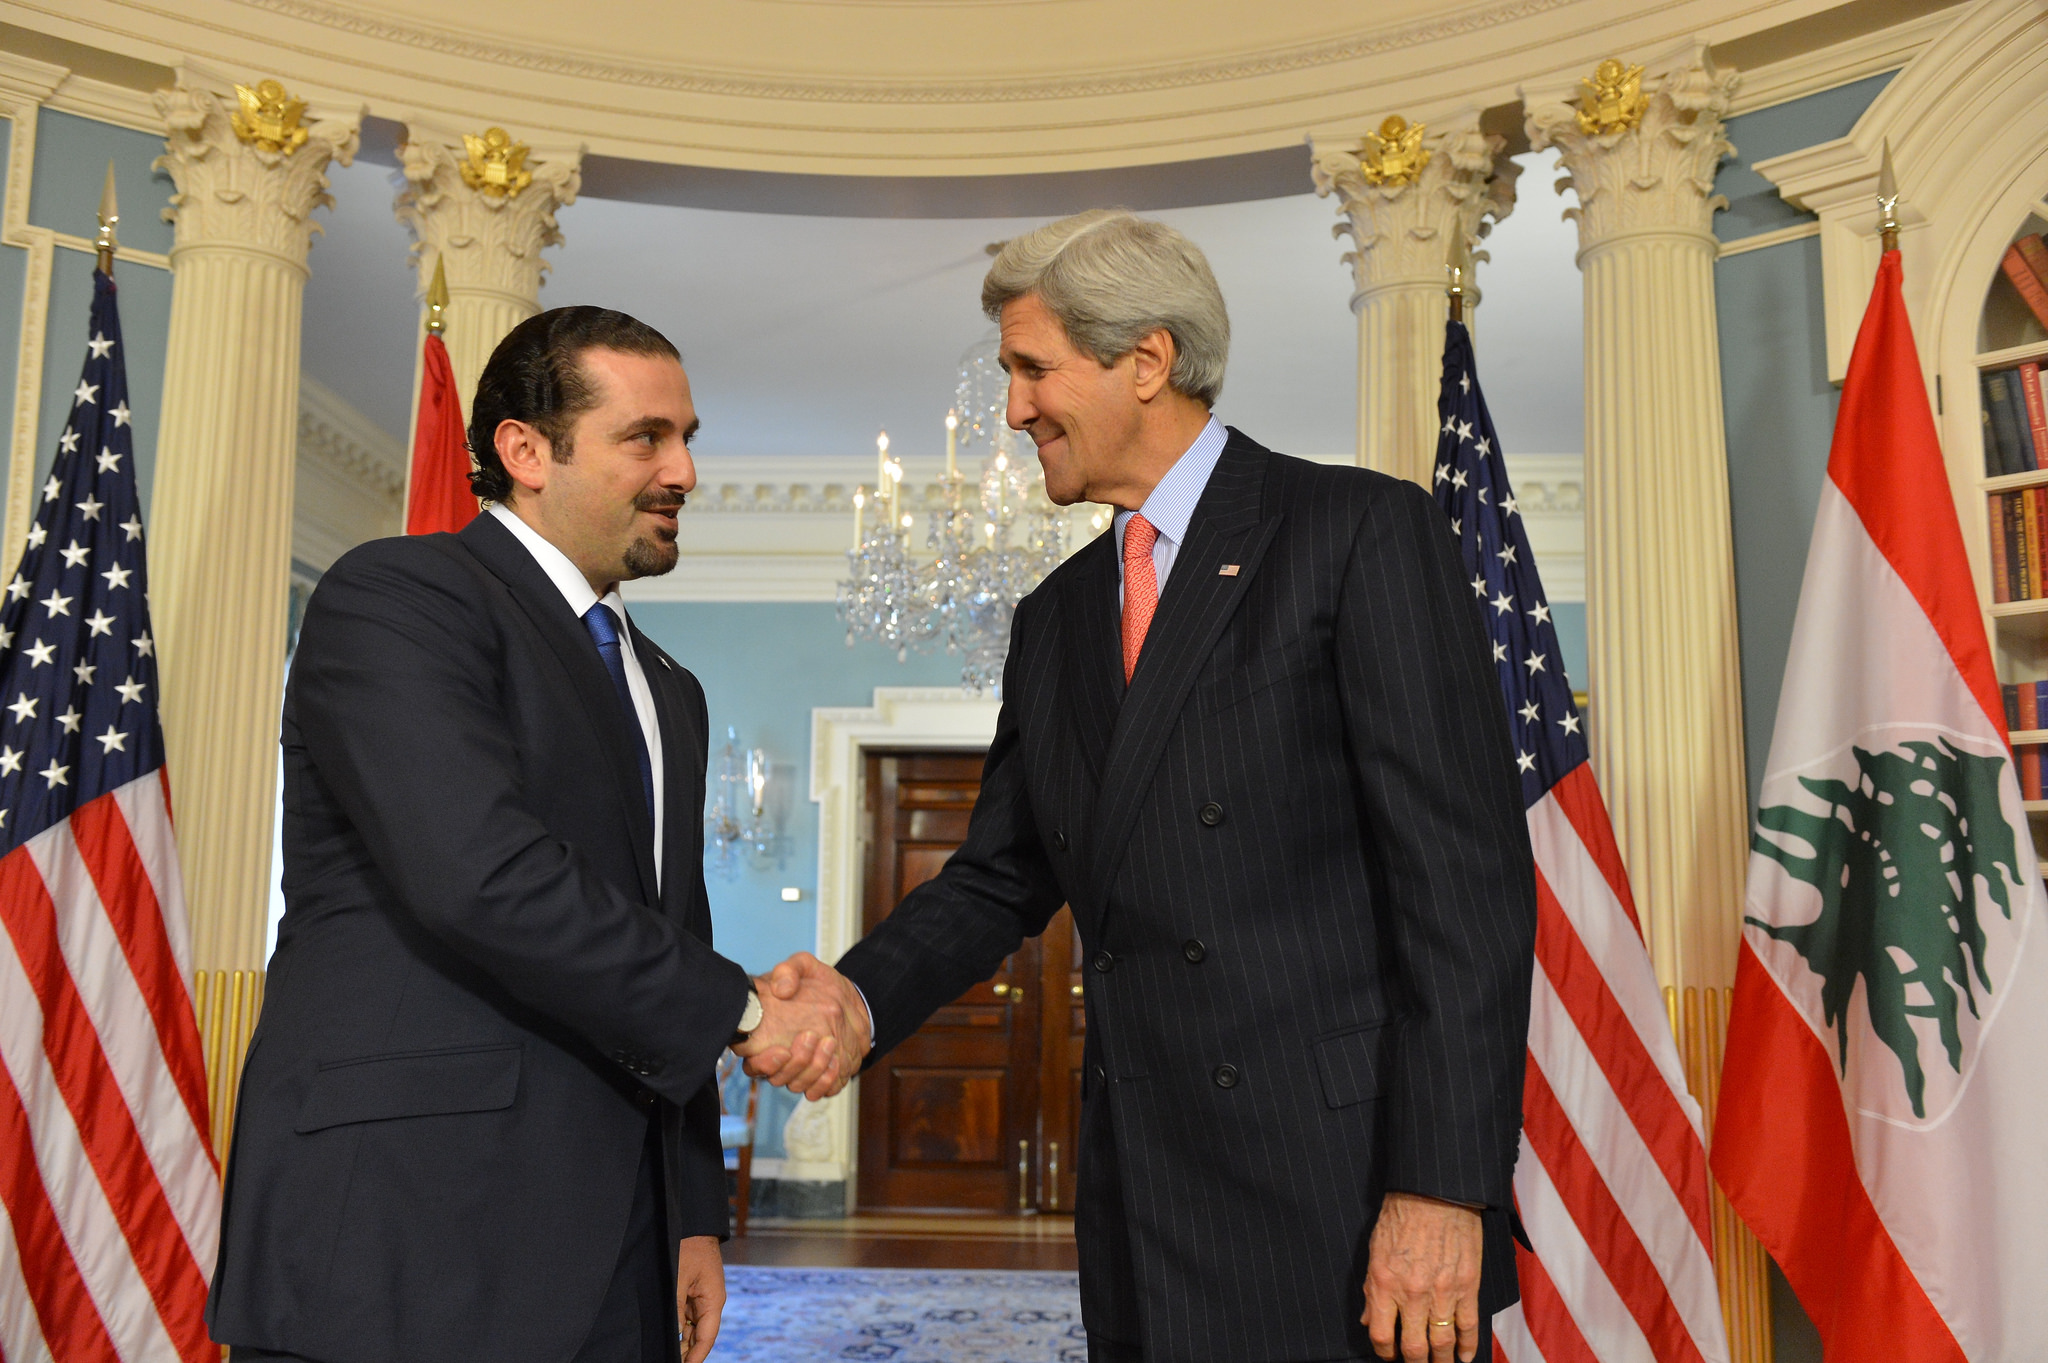 Prime Minister Sa`d Hariri, left, with former U.S. Secretary of State John Kerry, Washington, D.C., 2015. (State Department)